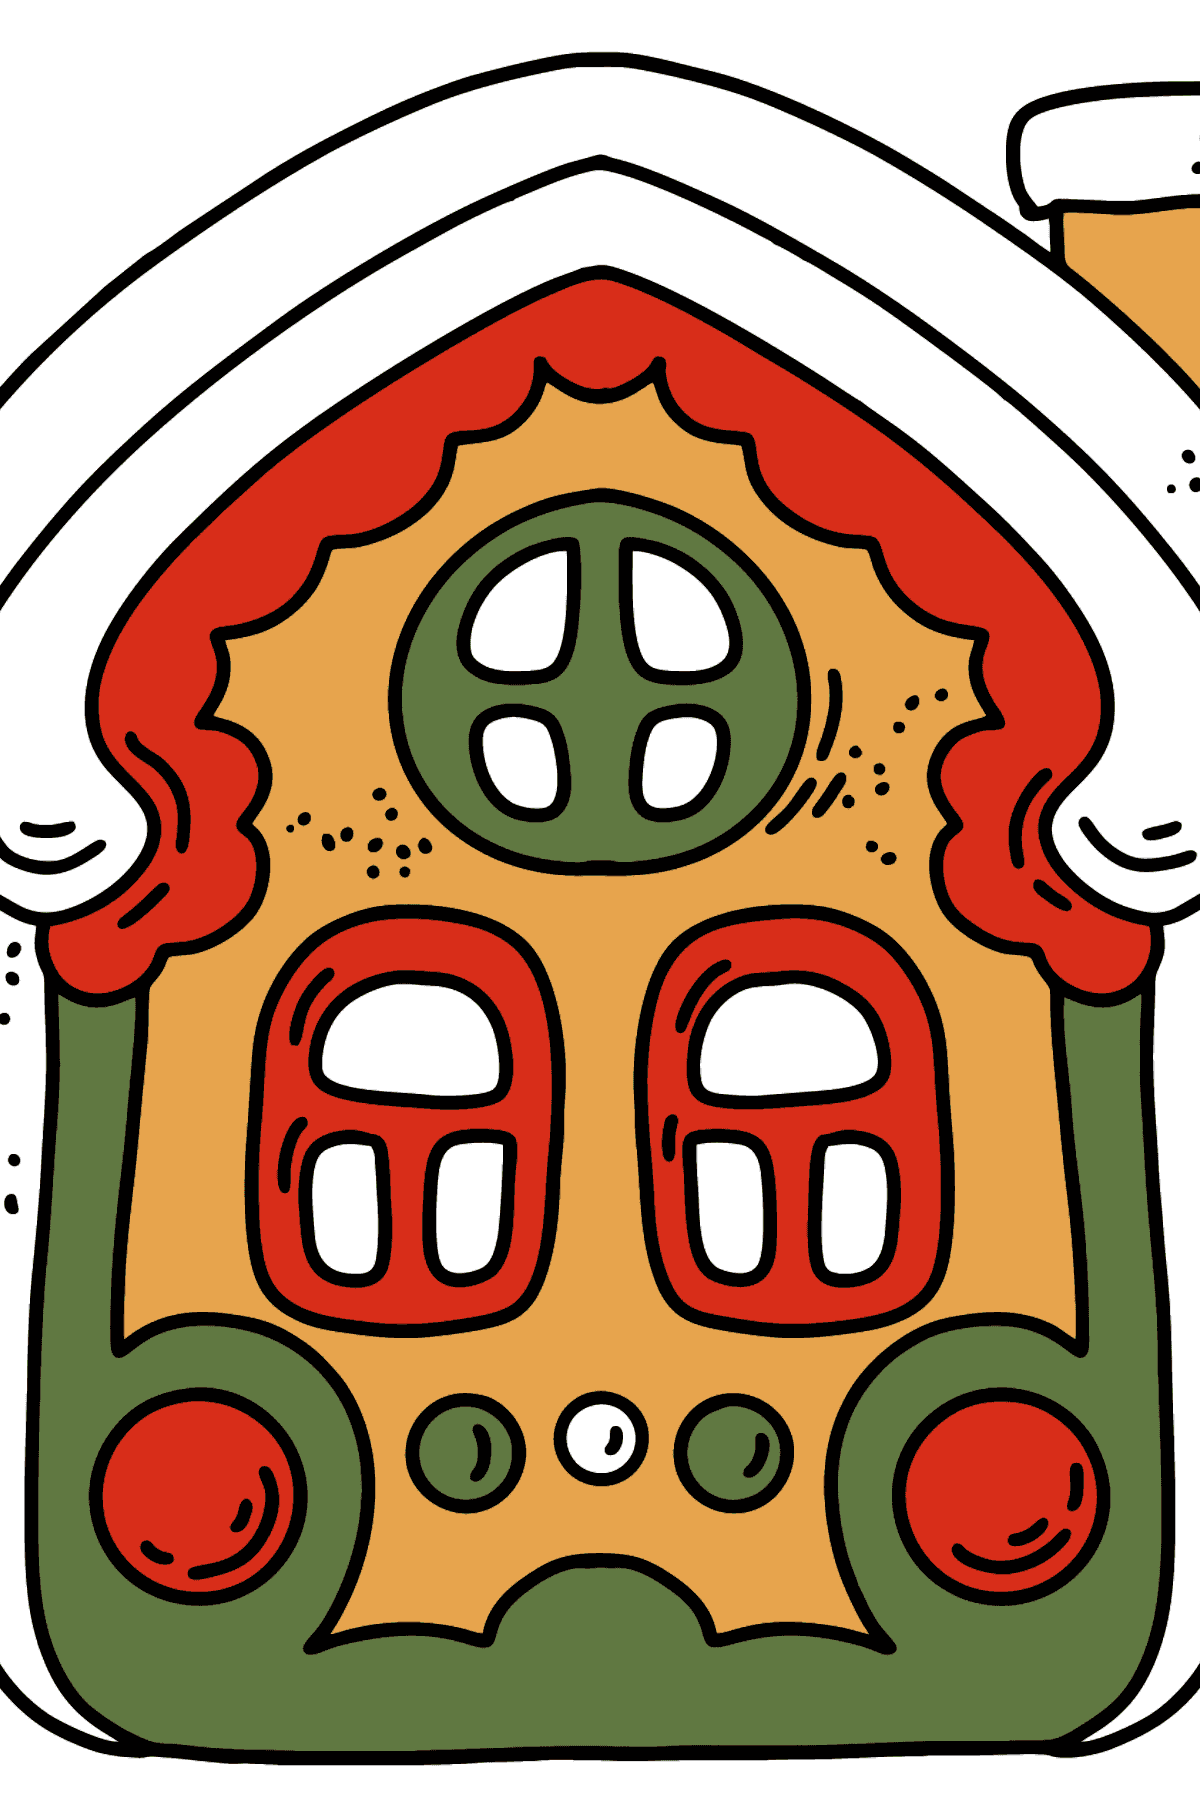 Red Green Gingerbread House coloring page - Coloring Pages for Kids